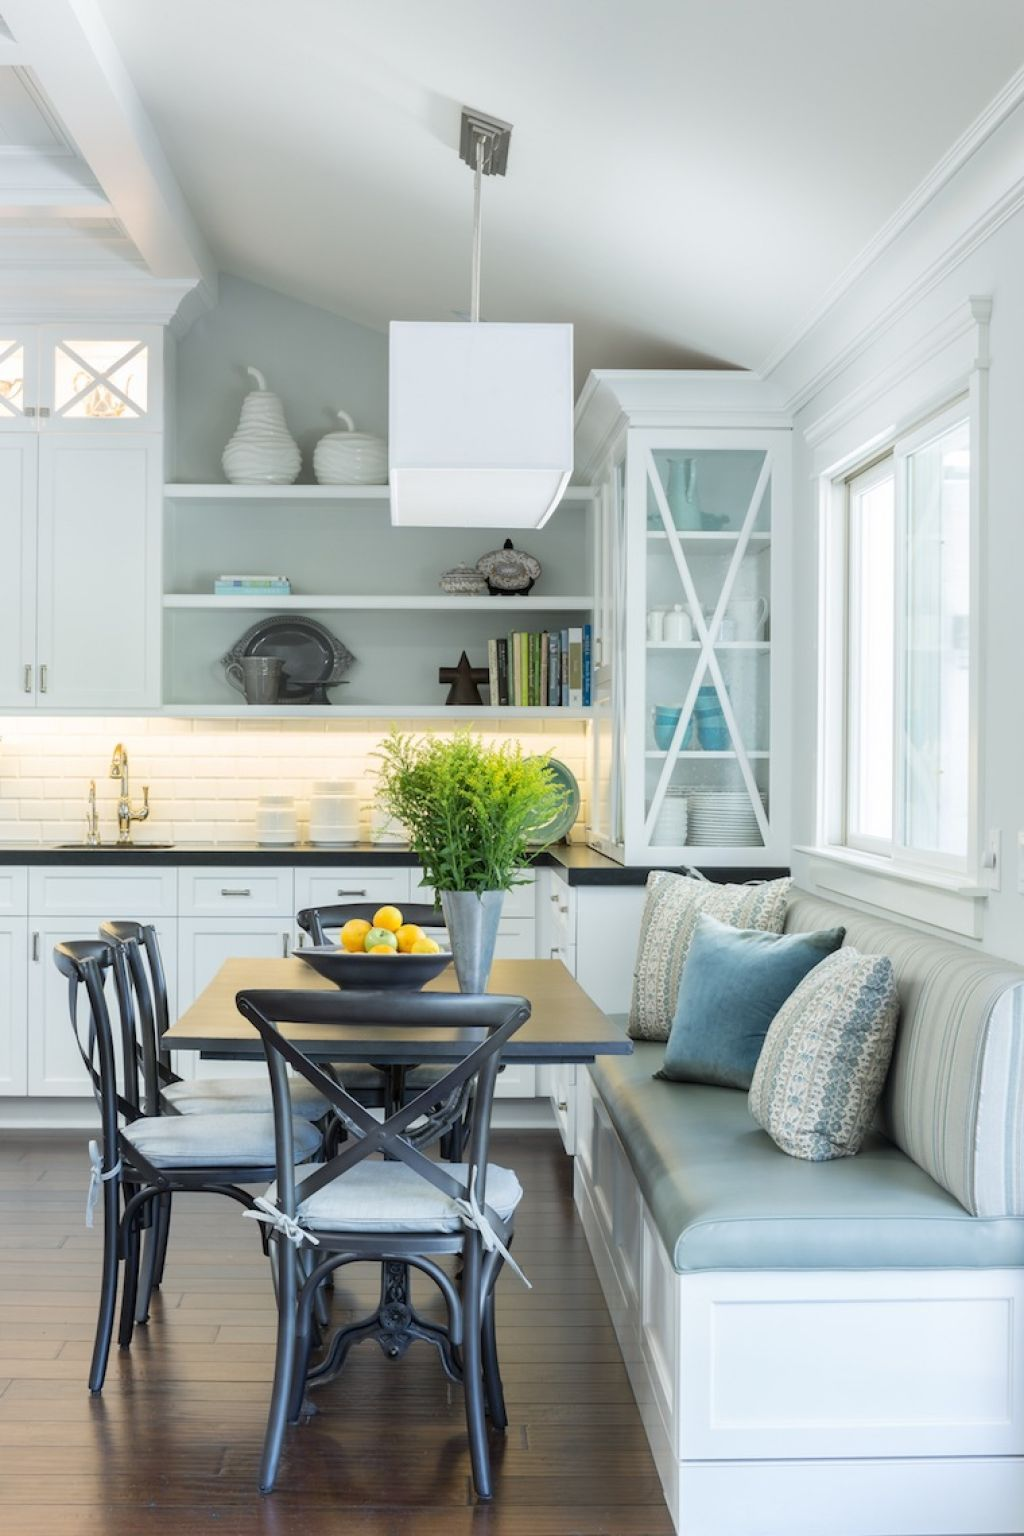 Ideas For Small Kitchen Seating Banquette Seating In Kitchen